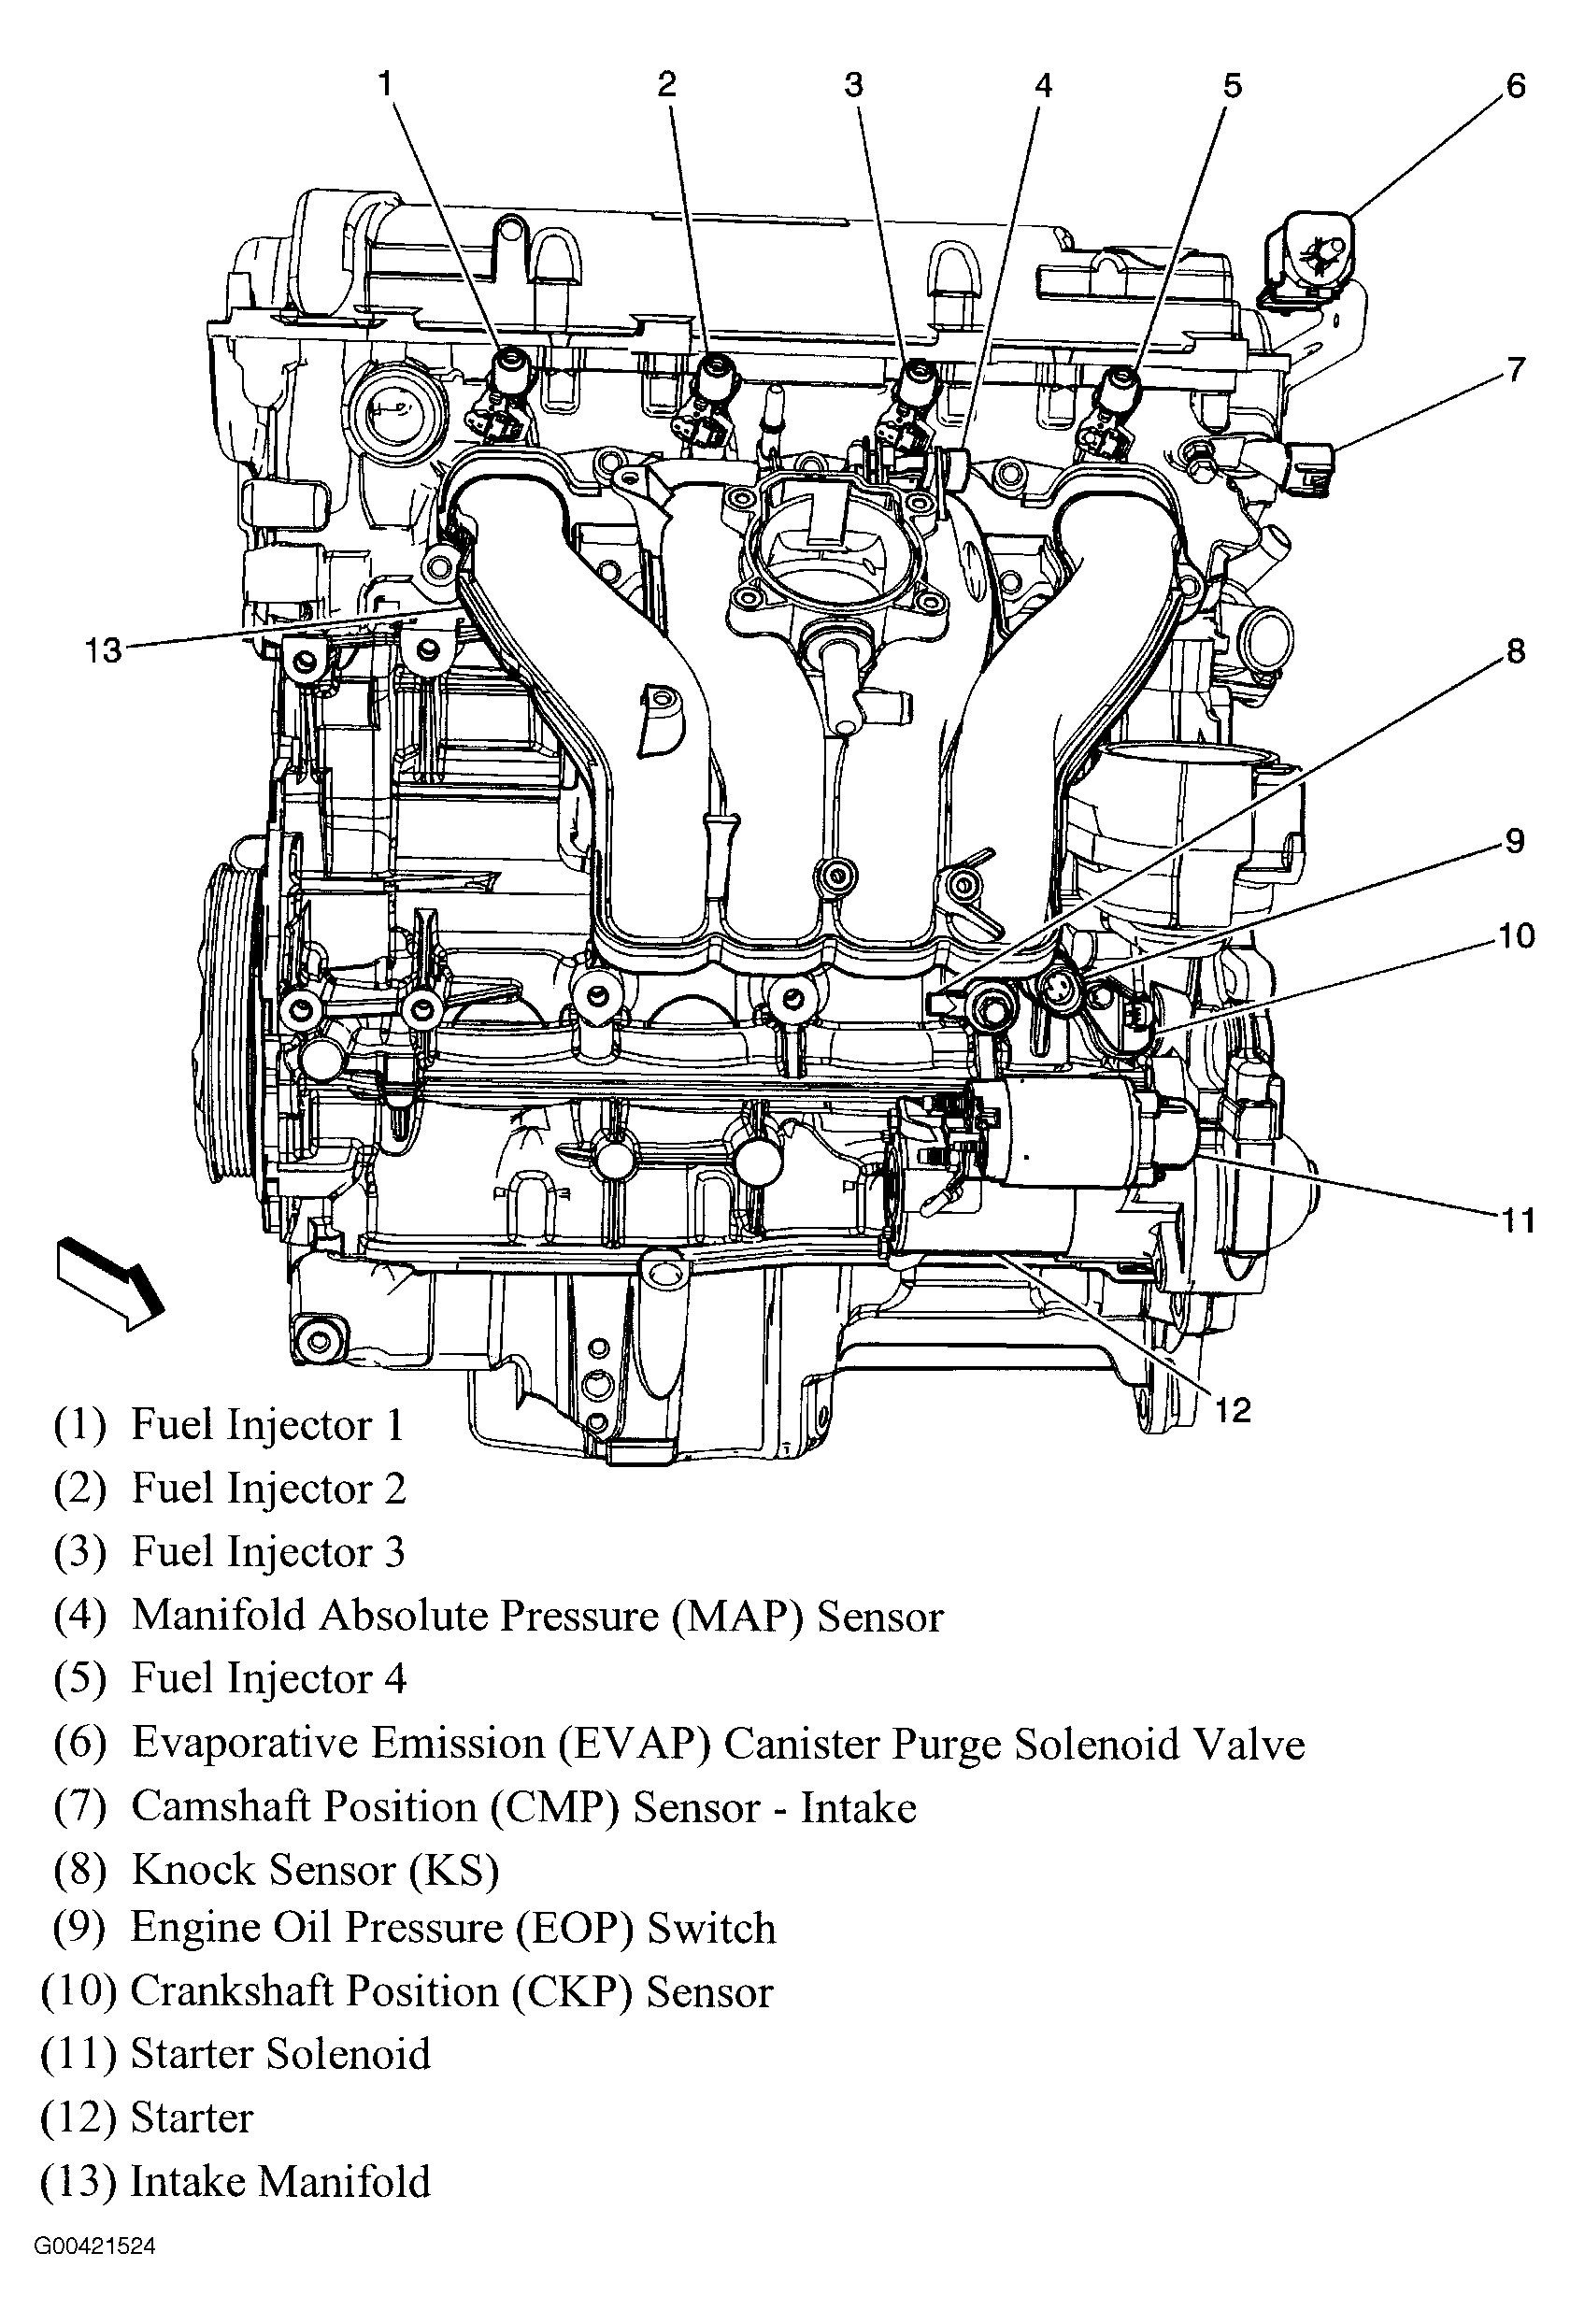 2 2 Ecotec Engine Diagram | Manual e-books  L Ecotec Engine Diagram on 2.4 ecotec engine bellhousing diagram, timing chain diagram, gm steering column diagram, ecotec 3 engine diagram, 2.2l s10 engine diagram, 2.2l v4 engine, 2003 chevy 2.2l engine diagram, 2.2l toyota engine diagram, 2.2l engine for pontiac, 2003 ecotec engine diagram, pontiac ecotec engine diagram, 246 gm transfer case diagram, chevy automatic transmission diagram, gm parts search diagram, 2.2 ecotec belt diagram, 2.2l chevrolet engine diagram, 2.2 ecotec chain diagram, 2.2l l61 ecotec, 2004 2.2 ecotec engine diagram, 2.2l ecotec engine oil pump,